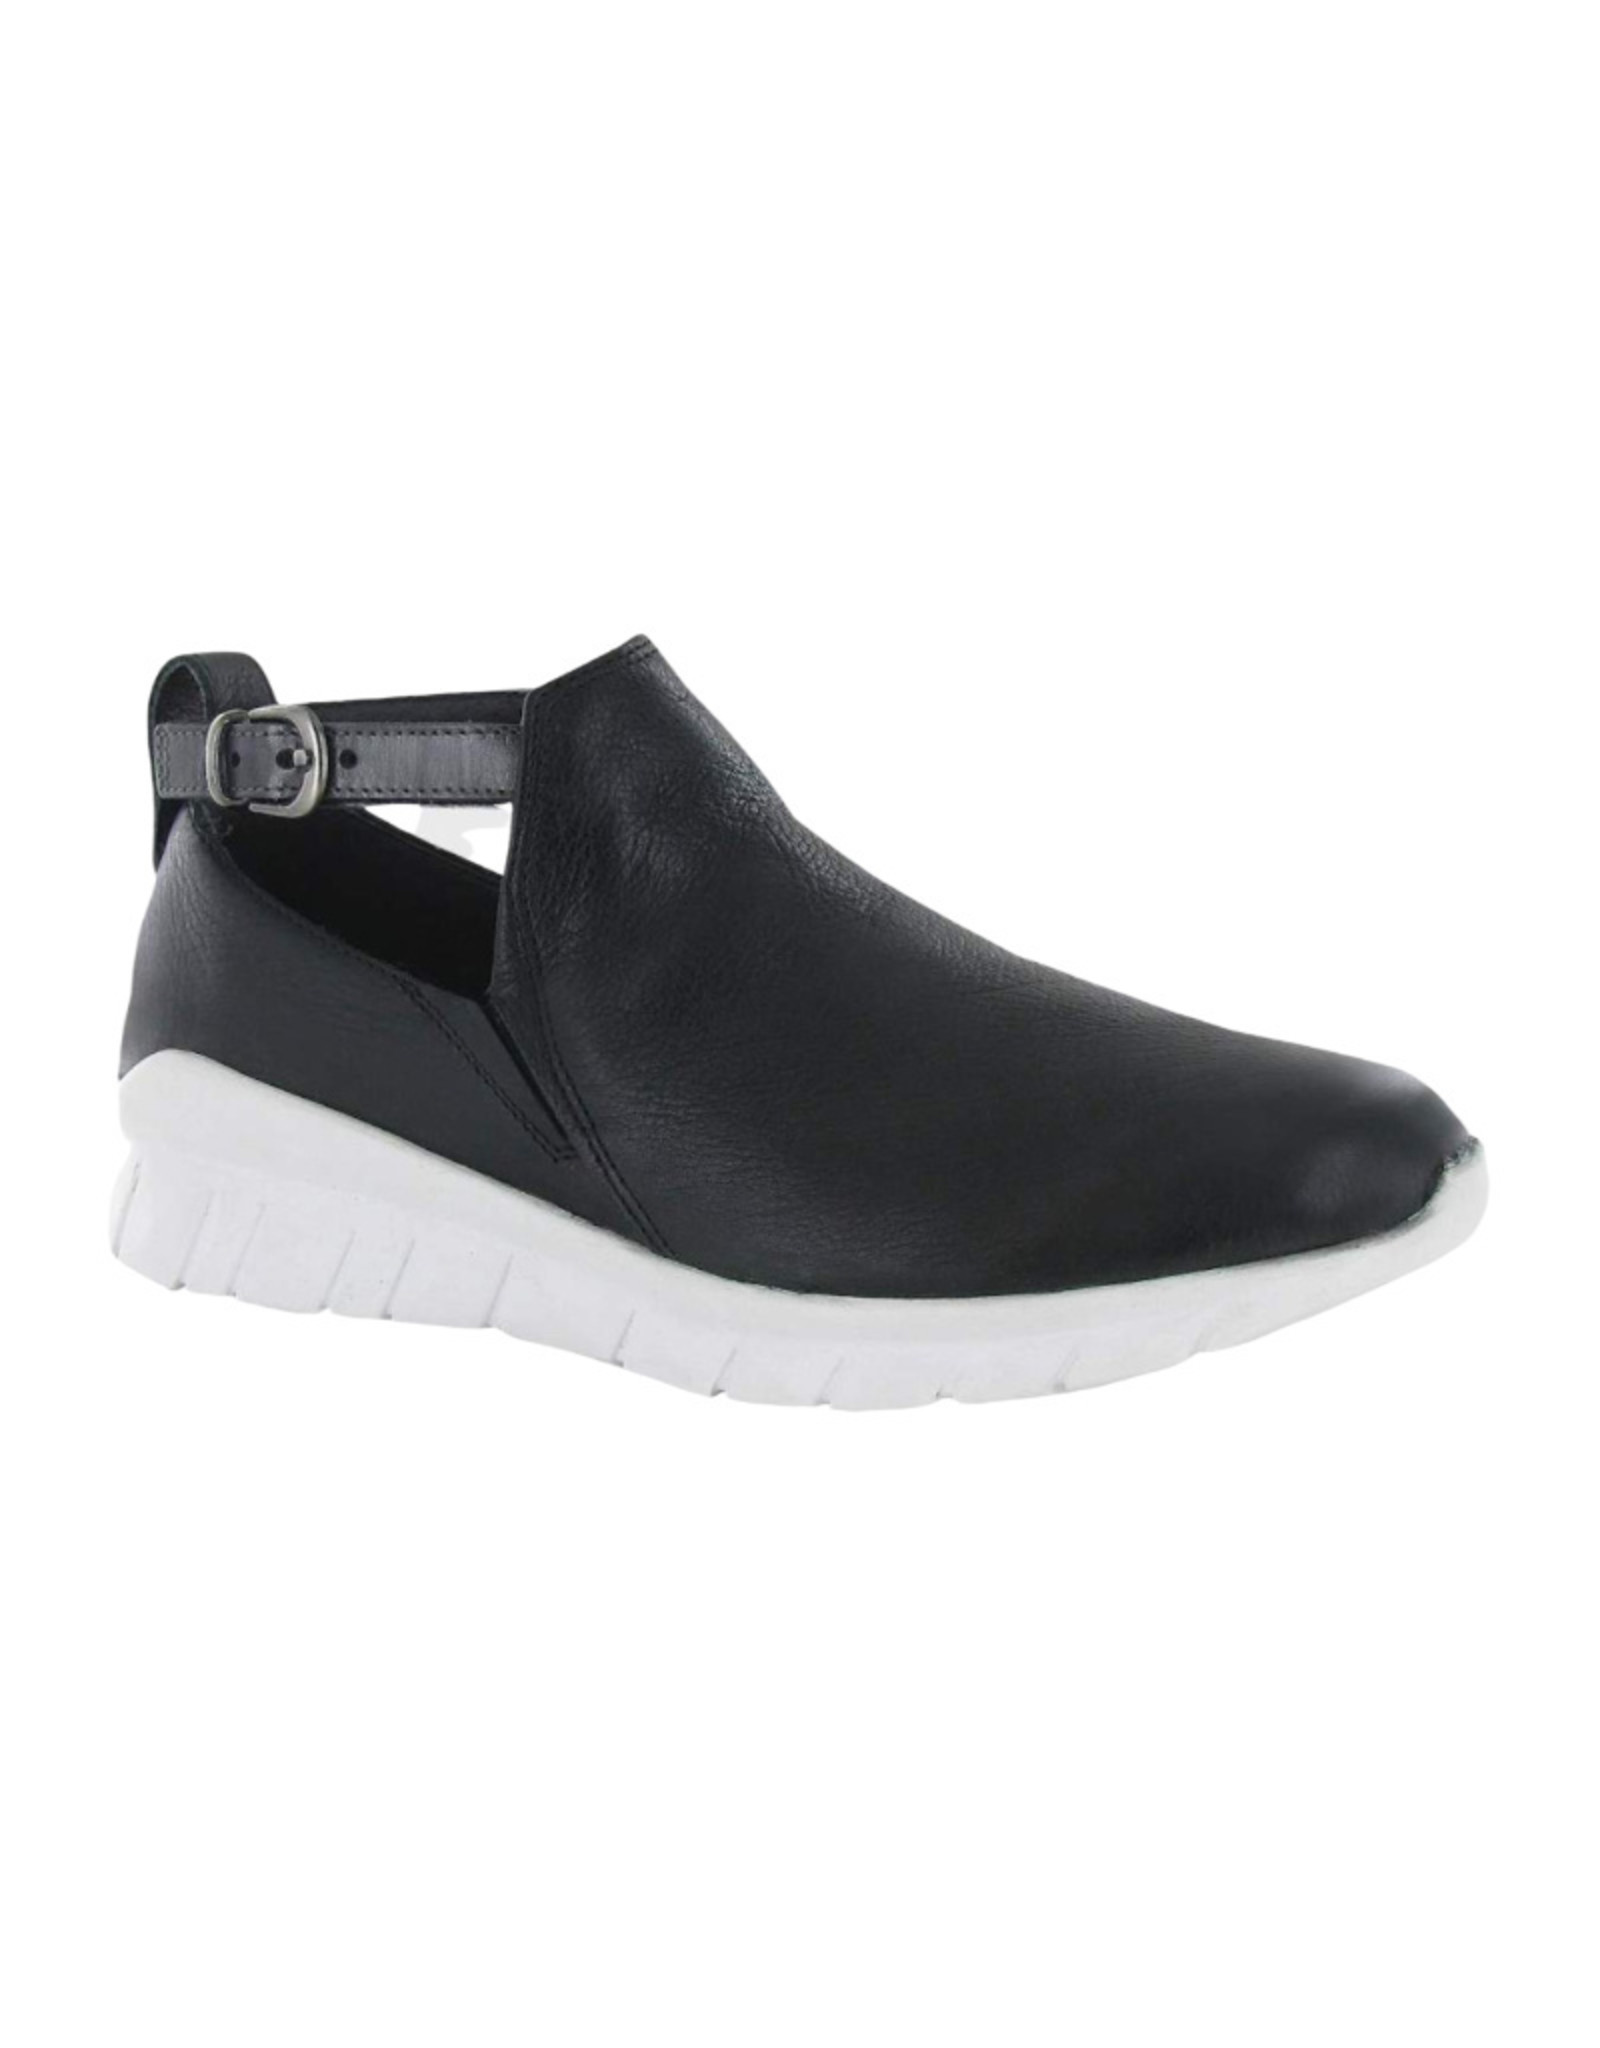 Naot Footwear Naot Cosmic Leather Sneaker